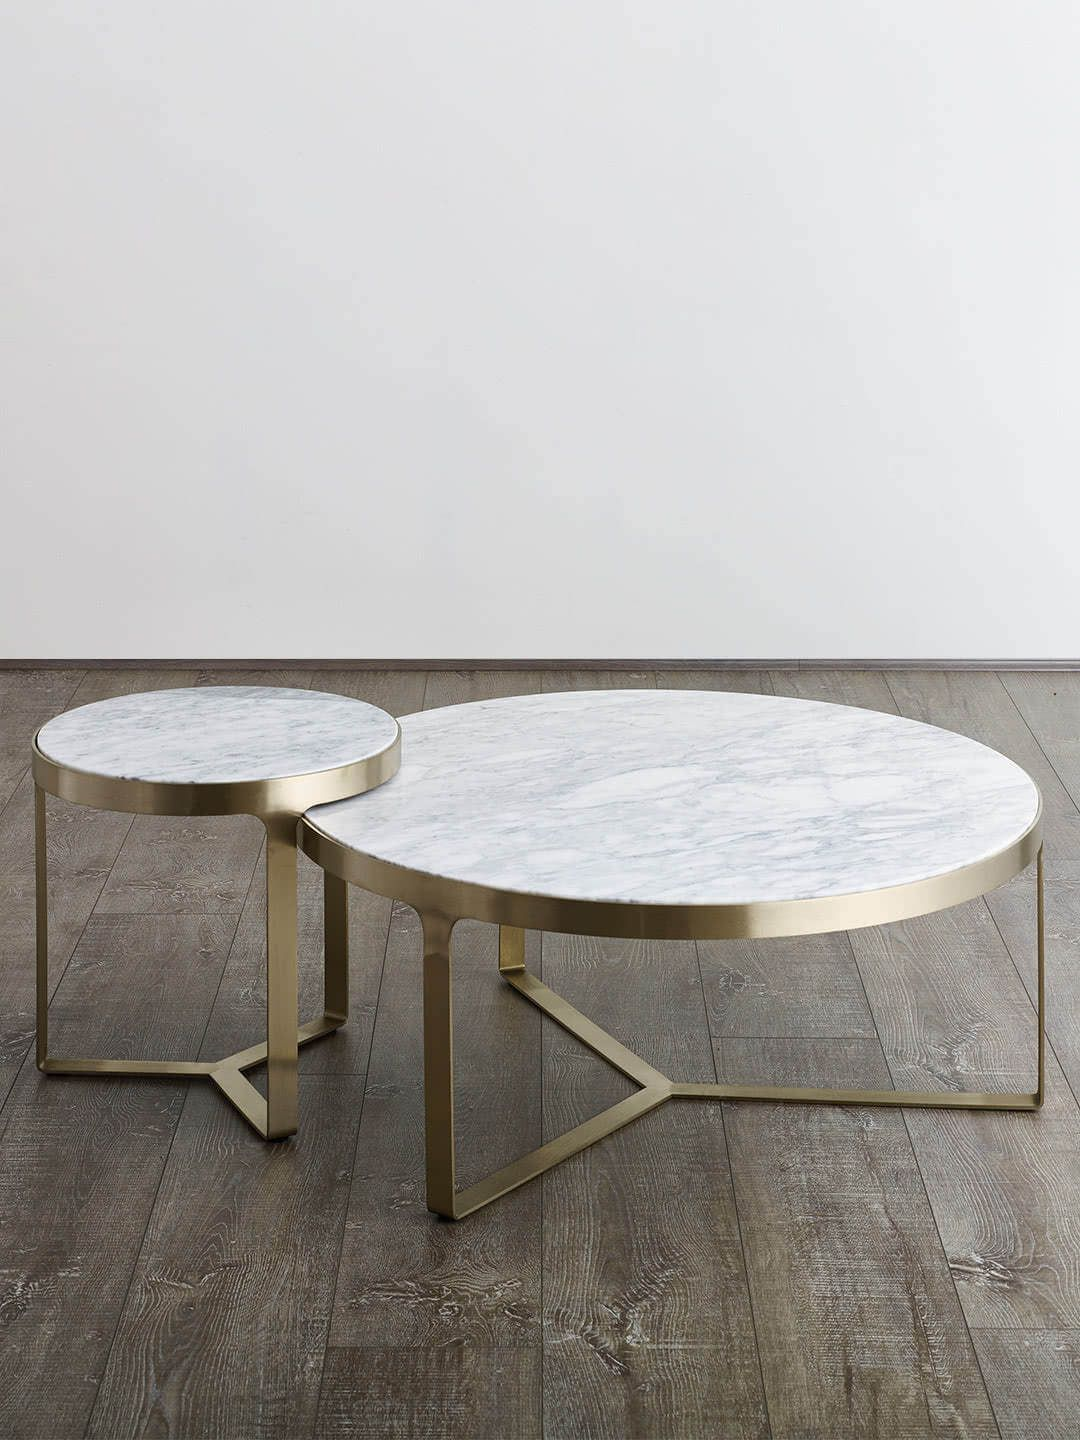 Julius Marble Tables The Rug Collection 01 Marbletables Coffetable Marblefloor Floormirror Whit Marble Tables Design Marble Table Marble Tables Living Room [ 1440 x 1080 Pixel ]